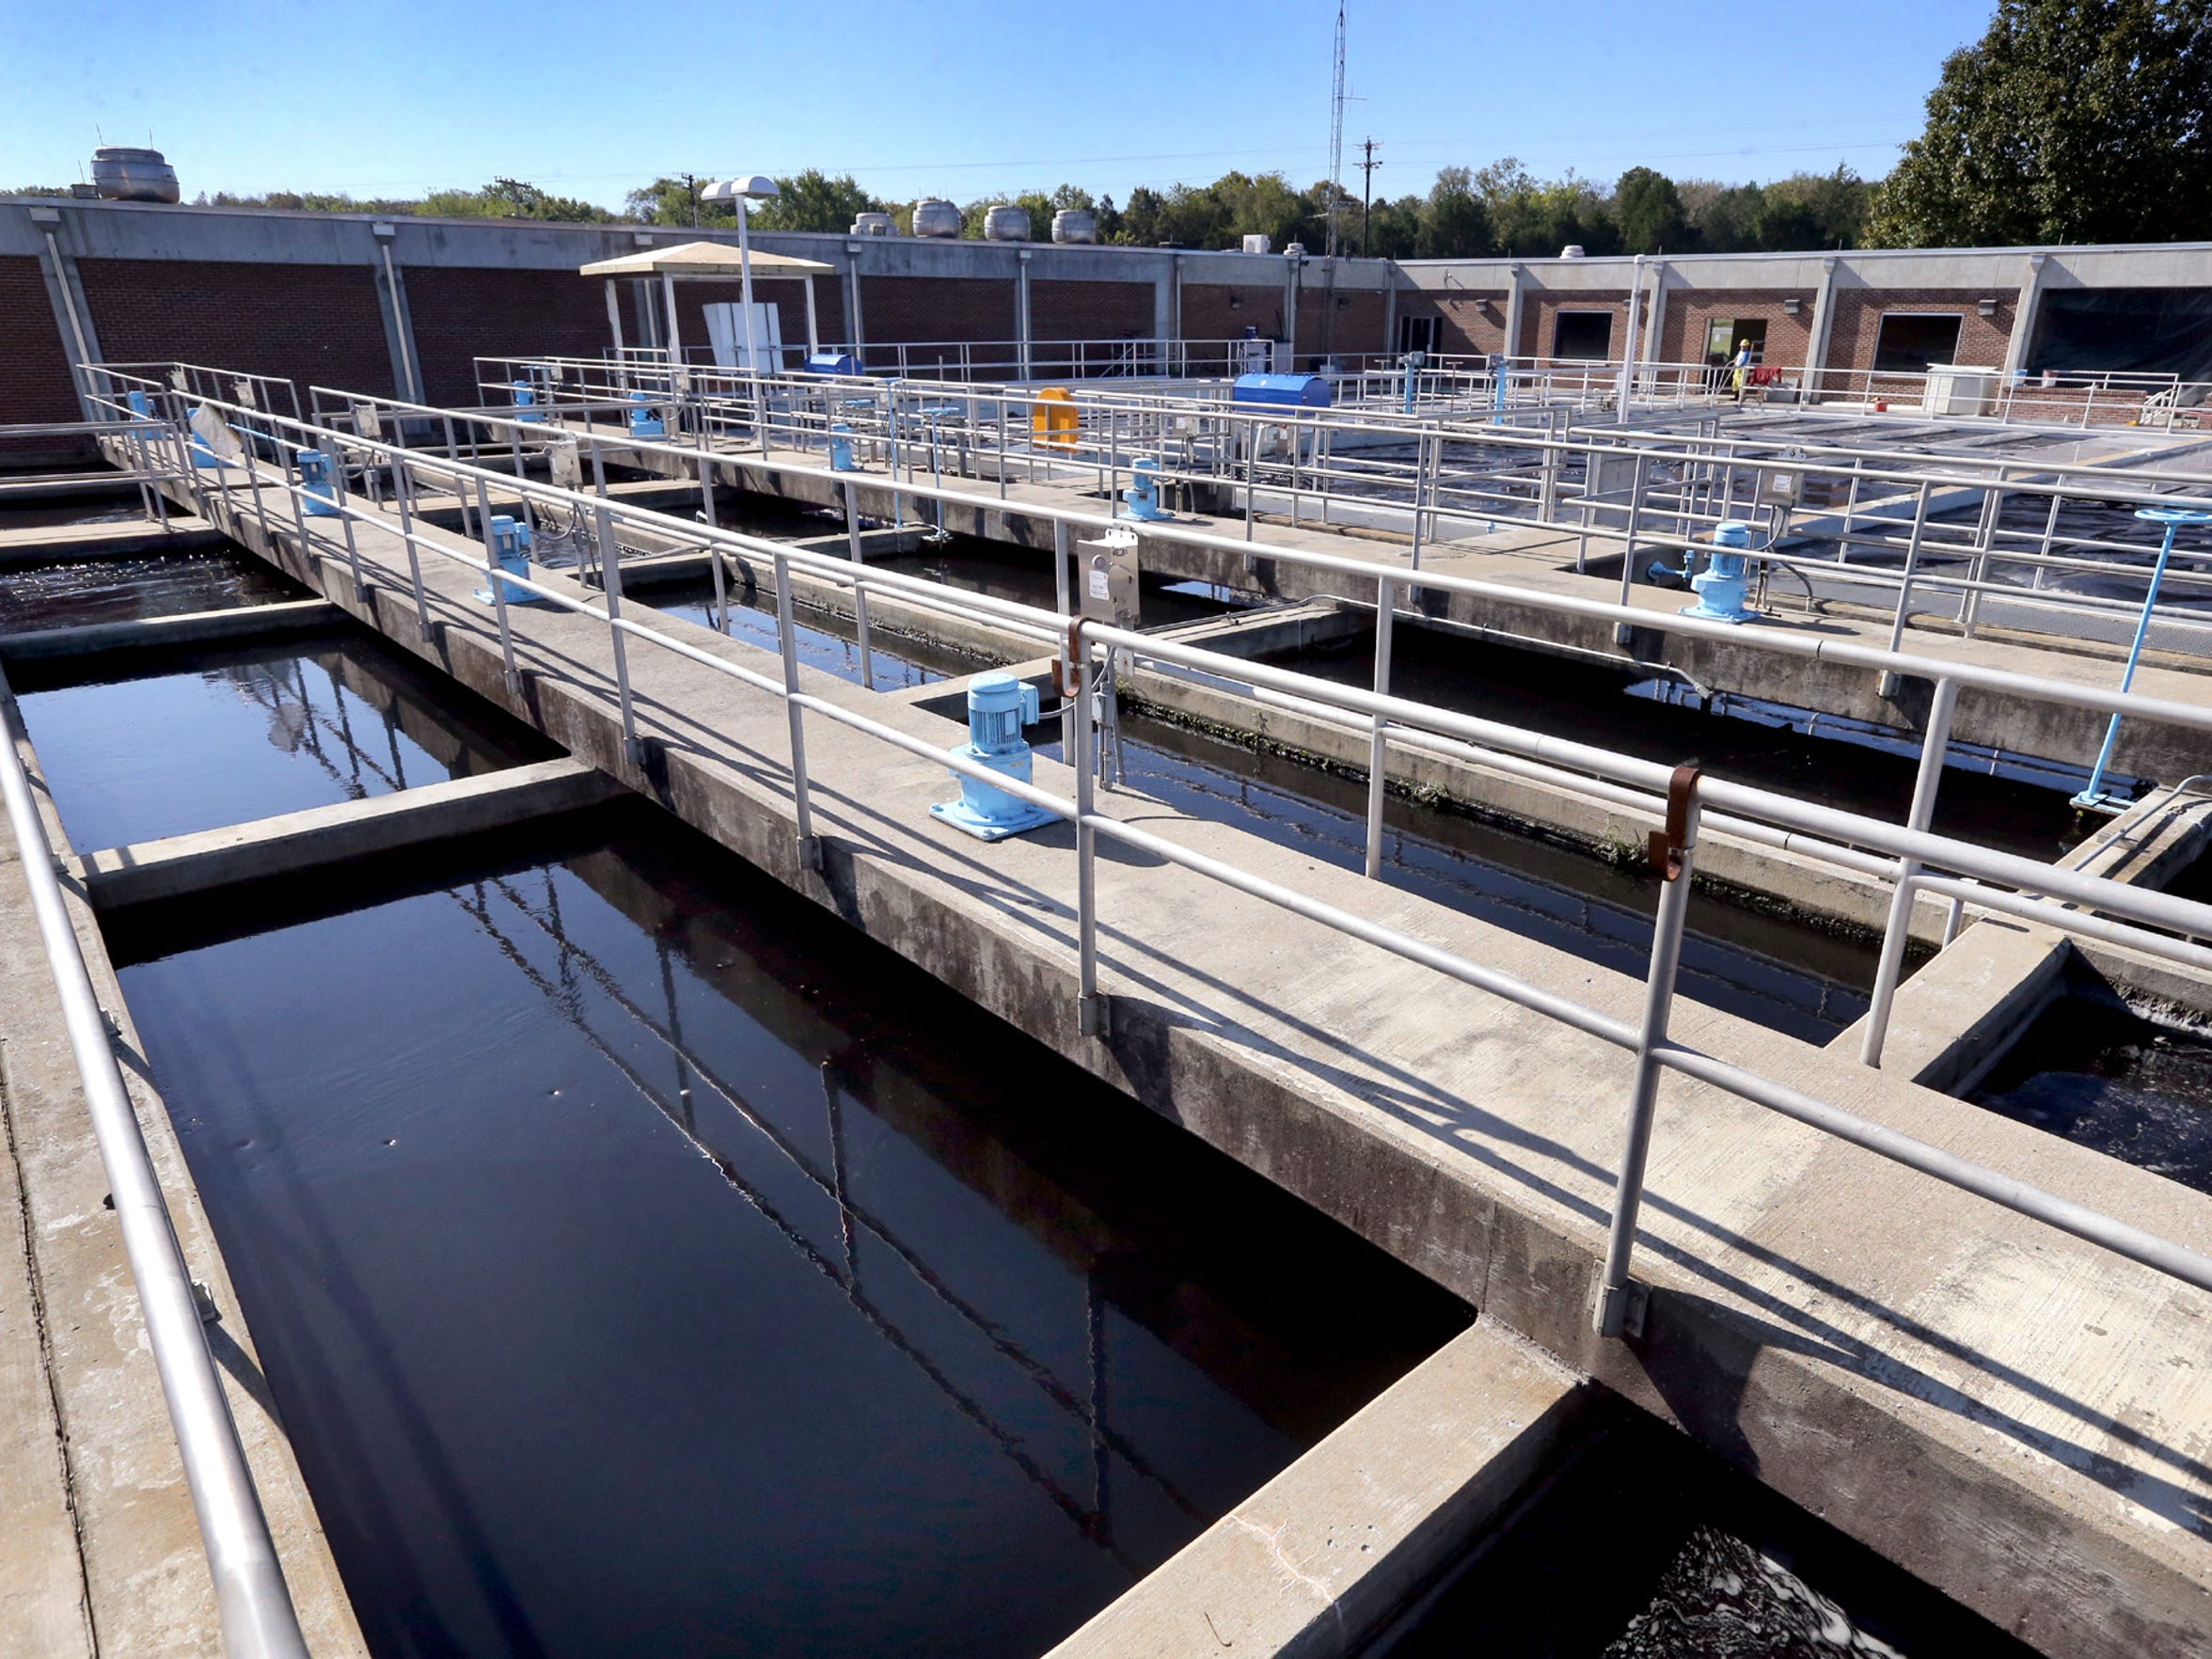 The mixing and sedimentation tanks at the K. Thomas Hutchinson Water Treatment Plant in Rutherford County on Tuesday, Oct. 13, 2015, where water from the East Fork of the Stones River is pumped.